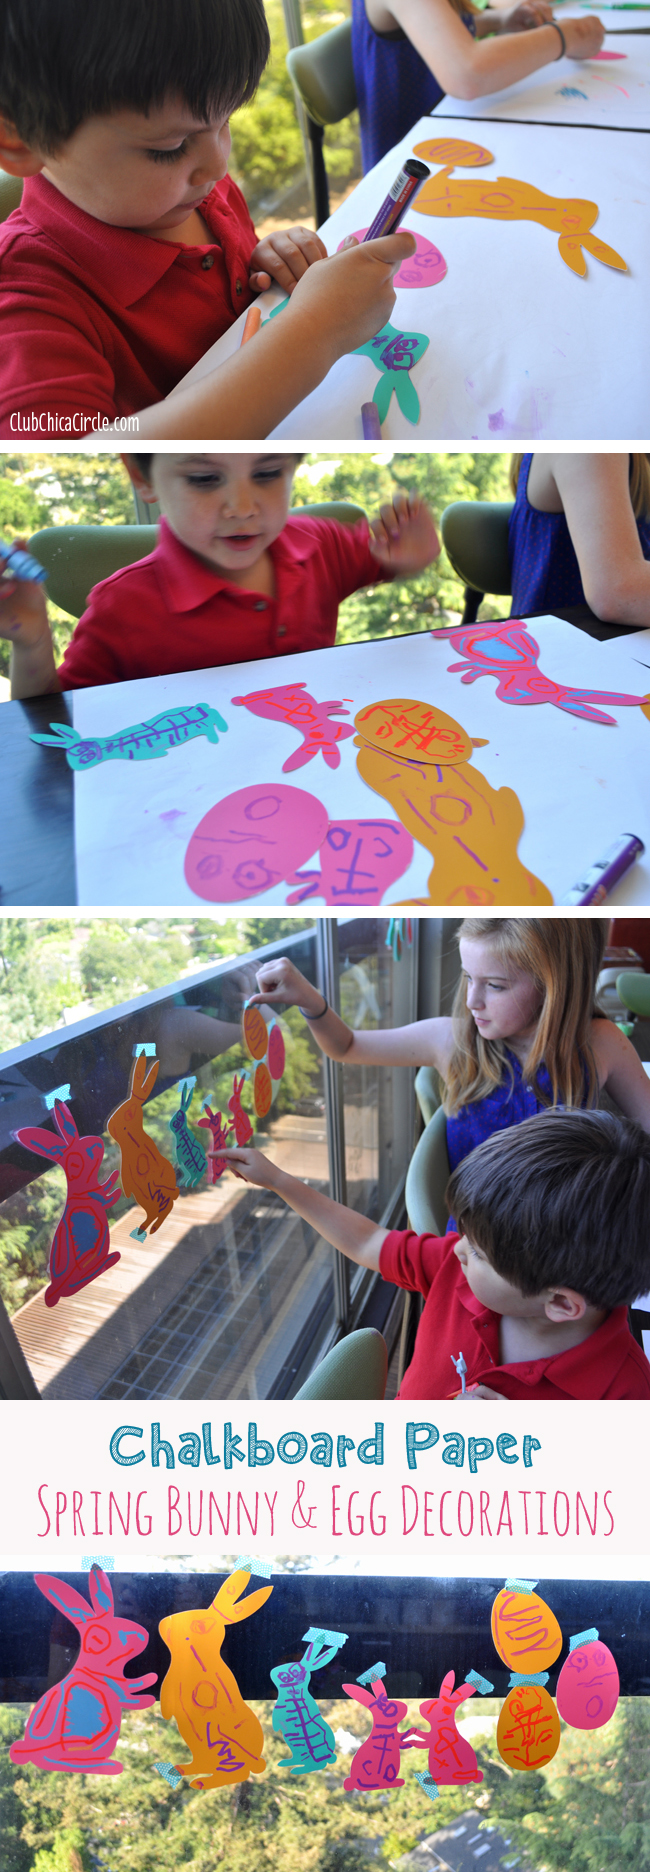 decorating chalkboard paper bunnies and eggs for easter